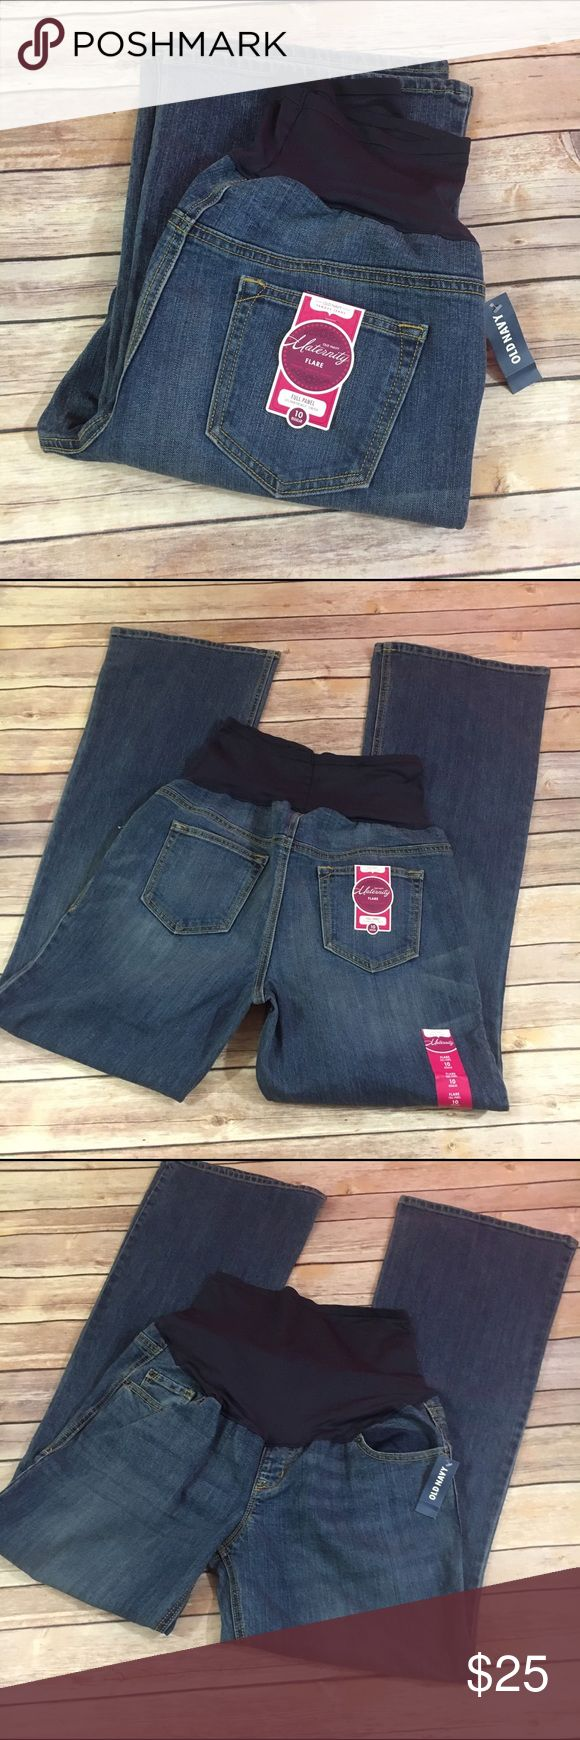 NEW NWT Old Navy Hello Pretty Mama Flare Denim 10 NEW NWT Old Navy Hello Pretty Mama Flare Denim Maternity Jeans 10  New with tags.  Full panel, five pocket style.  Stretch denim.  #new #nwt #jeans #maternity #blue #denim #flare #fullpanel #pregnancy #pregnant #stretch Old Navy Jeans Flare & Wide Leg